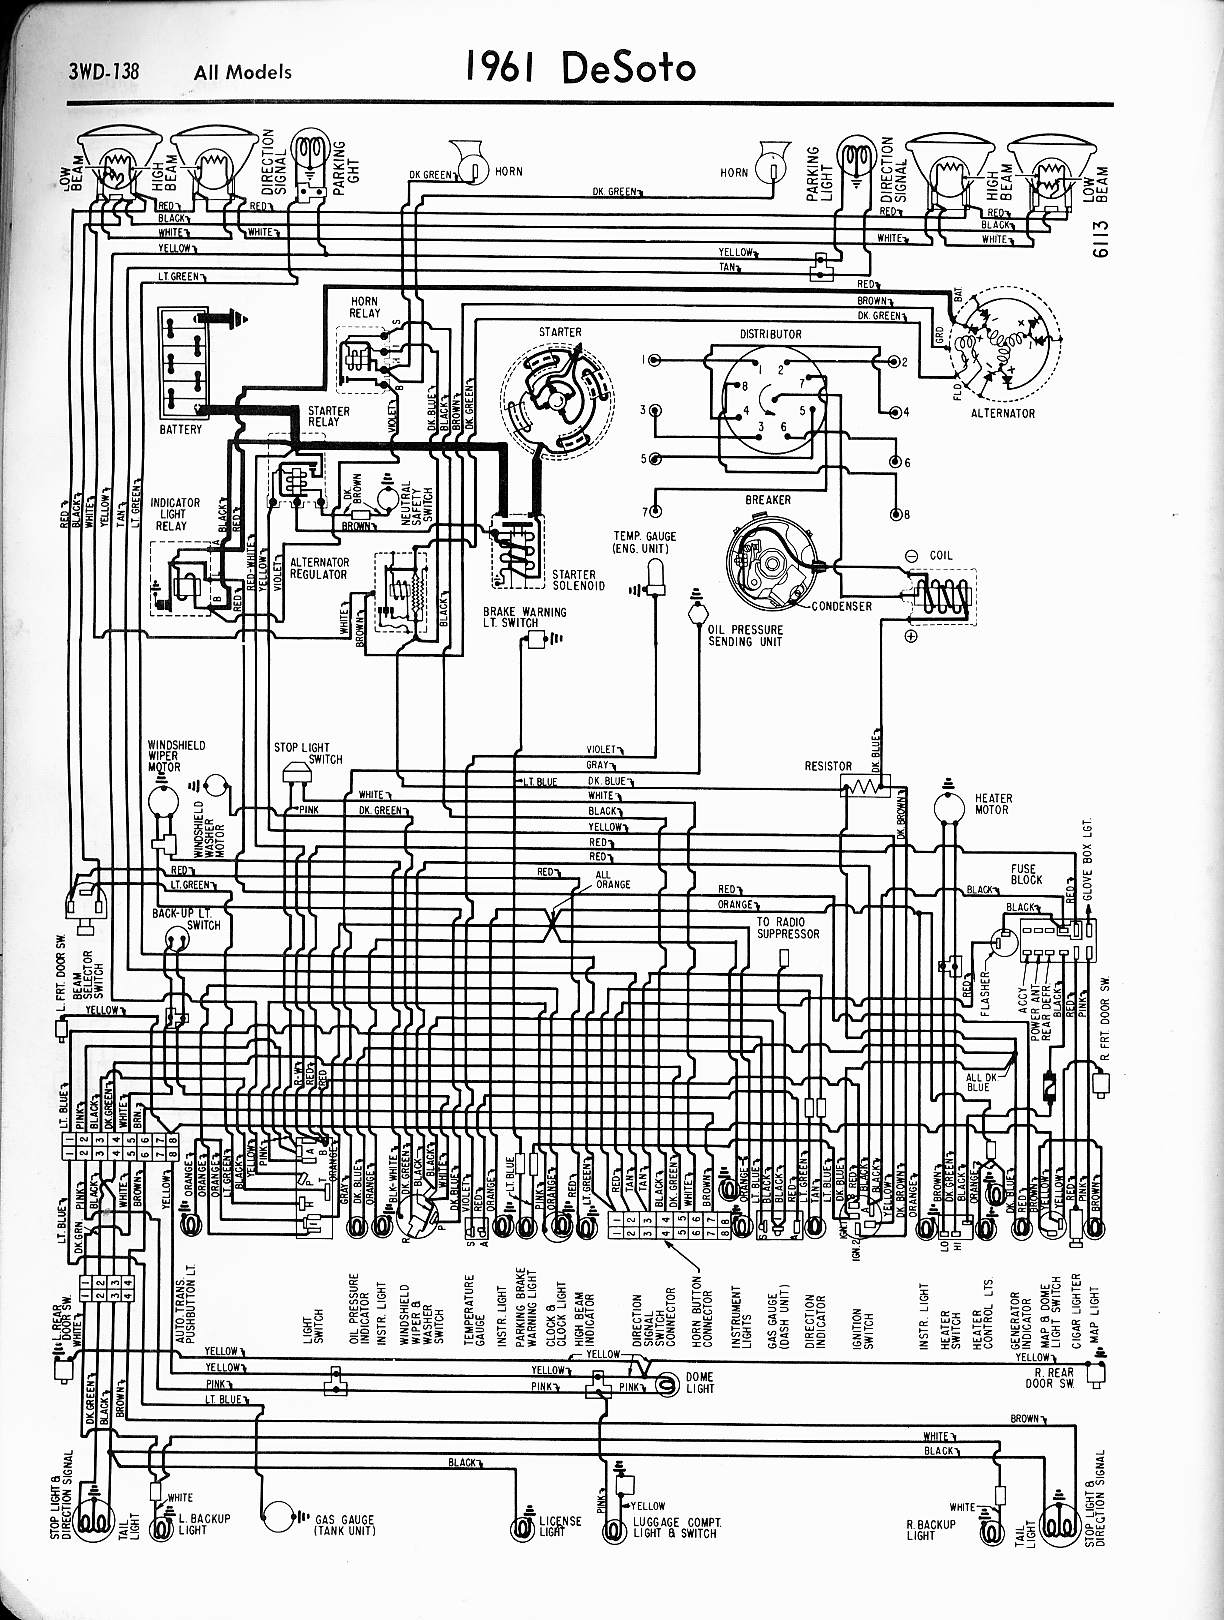 1949 Ford Custom Wiring Diagram Library Light Switch Golf Cart Lights De Soto Diagrams 1957 1965 Rh Oldcarmanualproject Com 1956 Desoto 1951